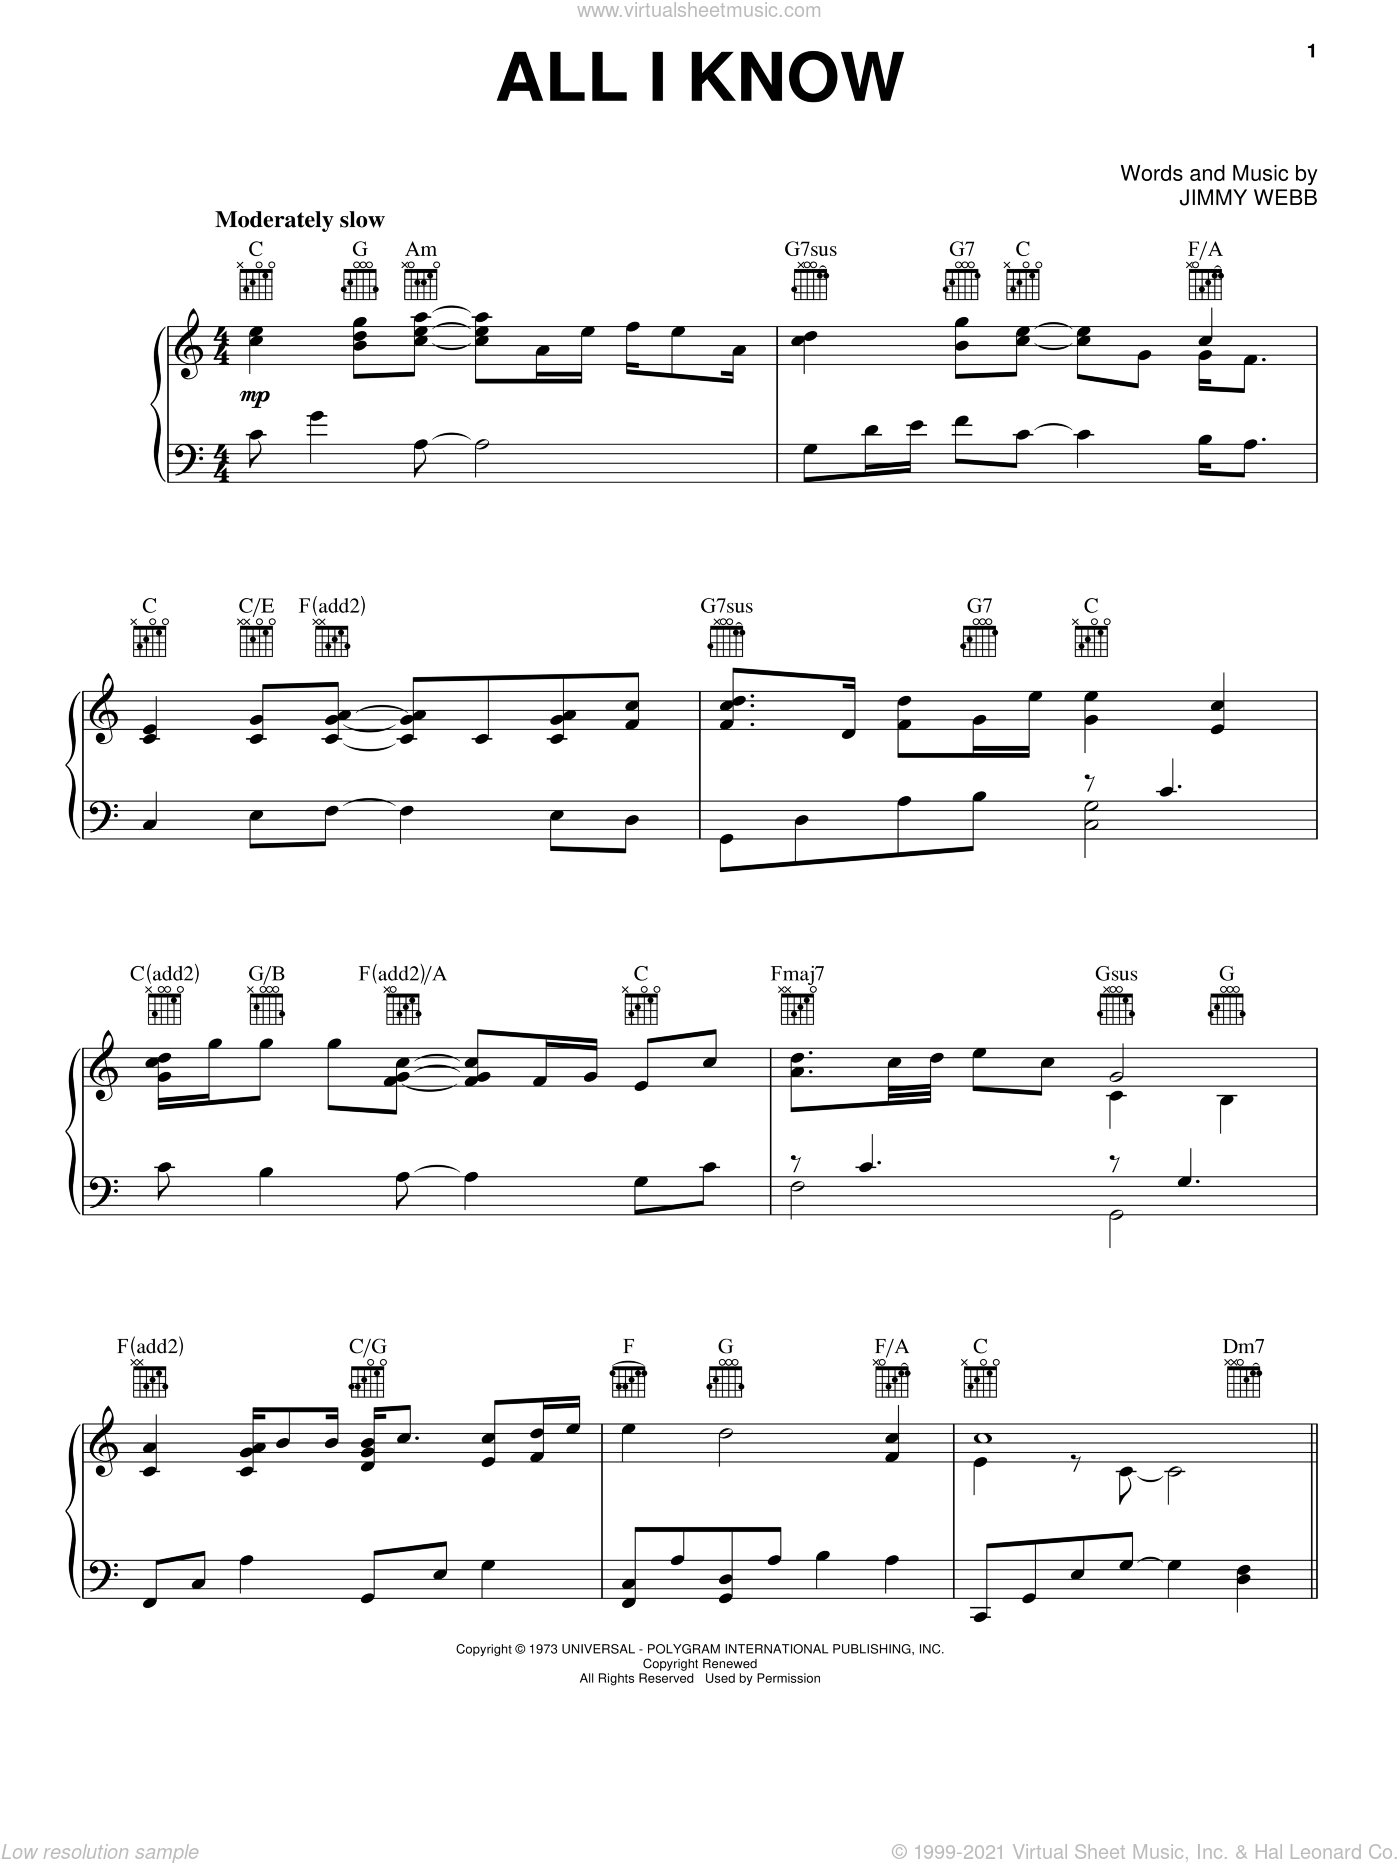 All I Know sheet music for voice, piano or guitar by Jimmy Webb